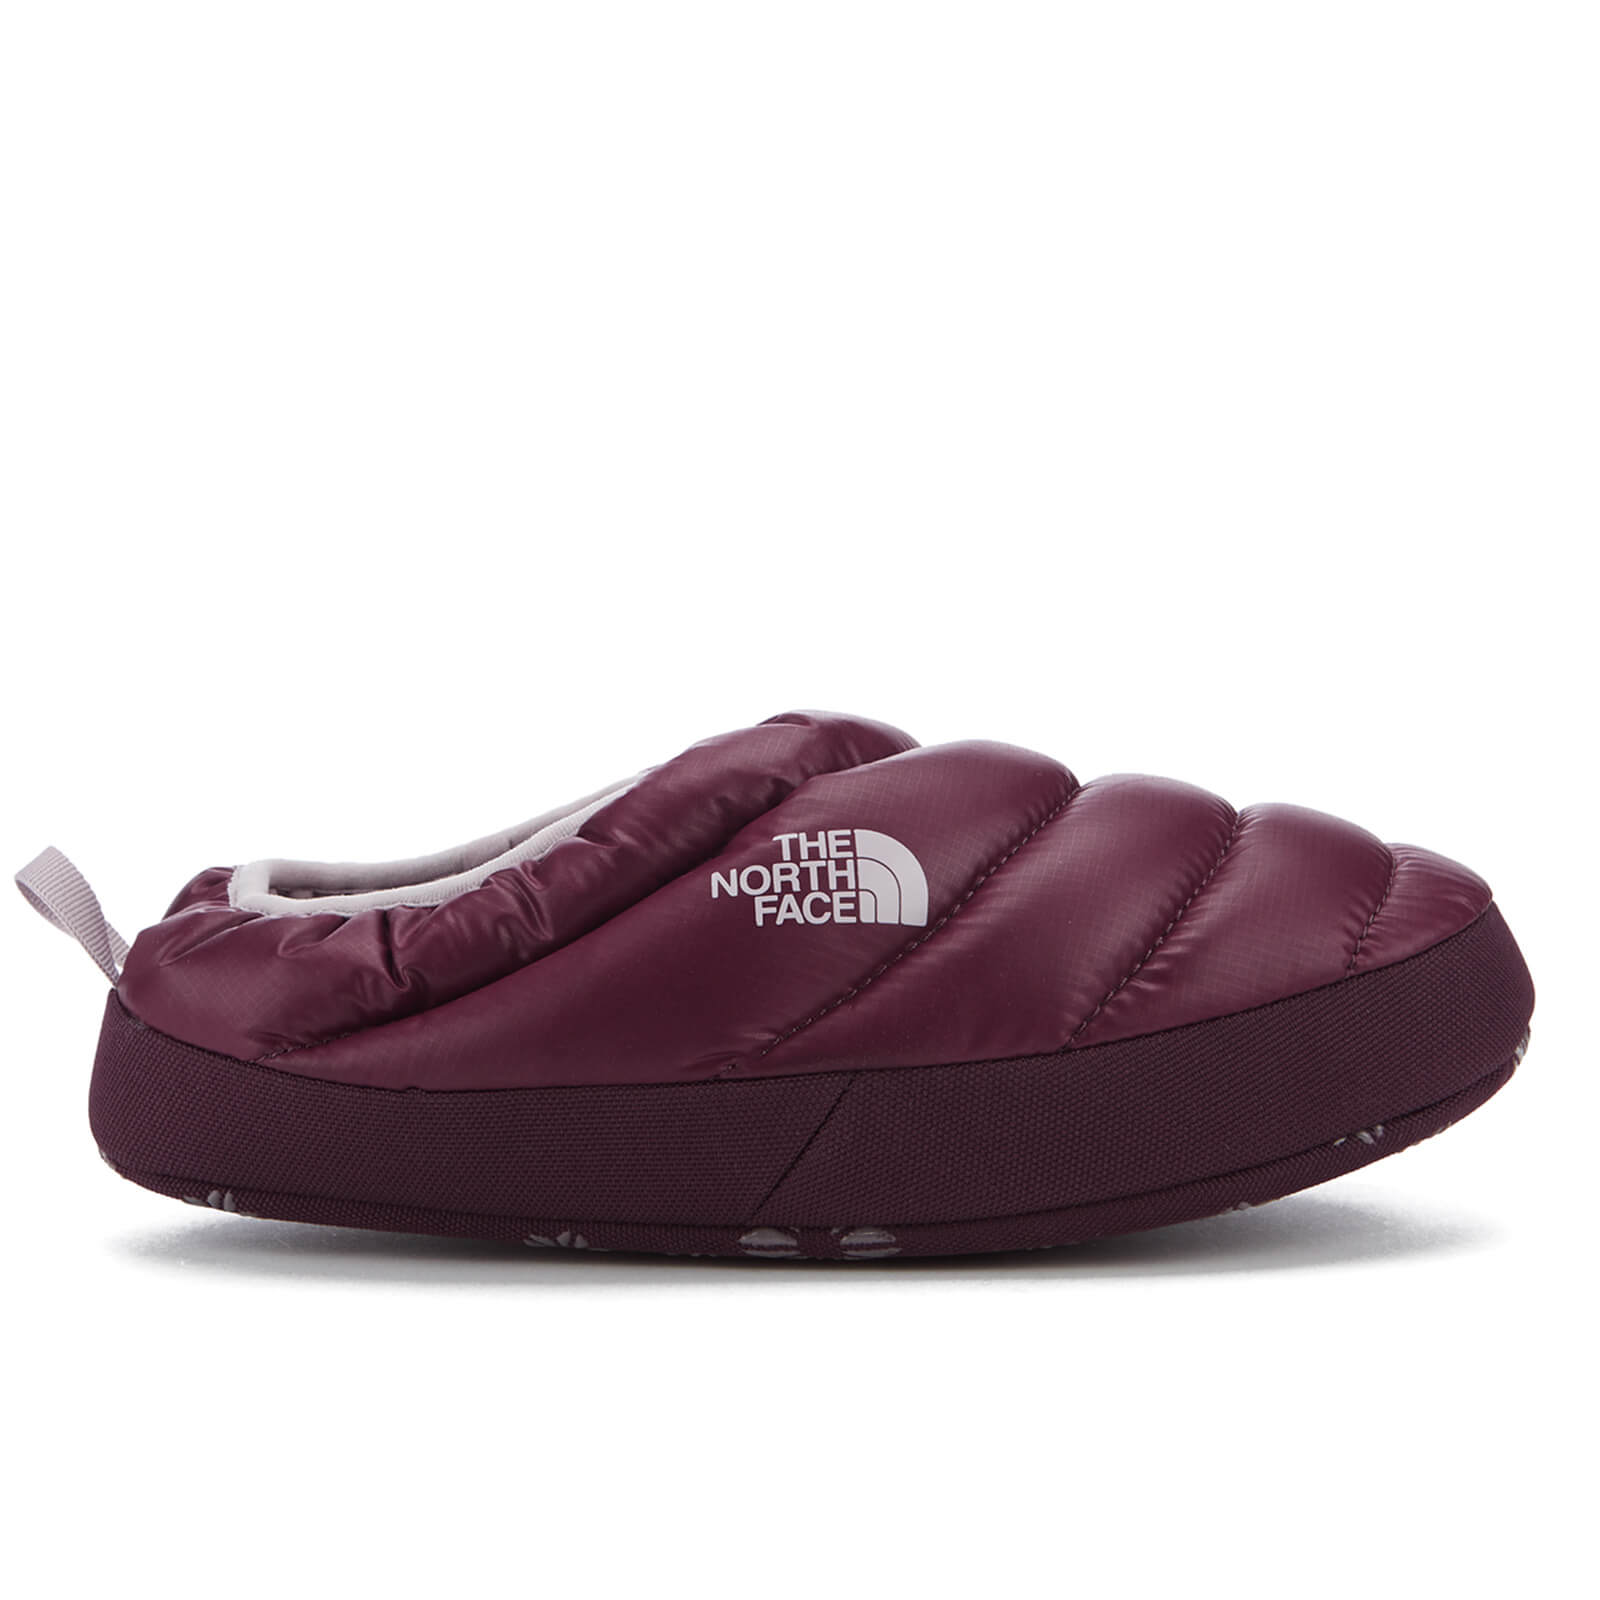 3551280c1da The North Face Women s NSE Tent Mule Faux Fur II Slippers - Shiny Deep  Garnet Red Clothing